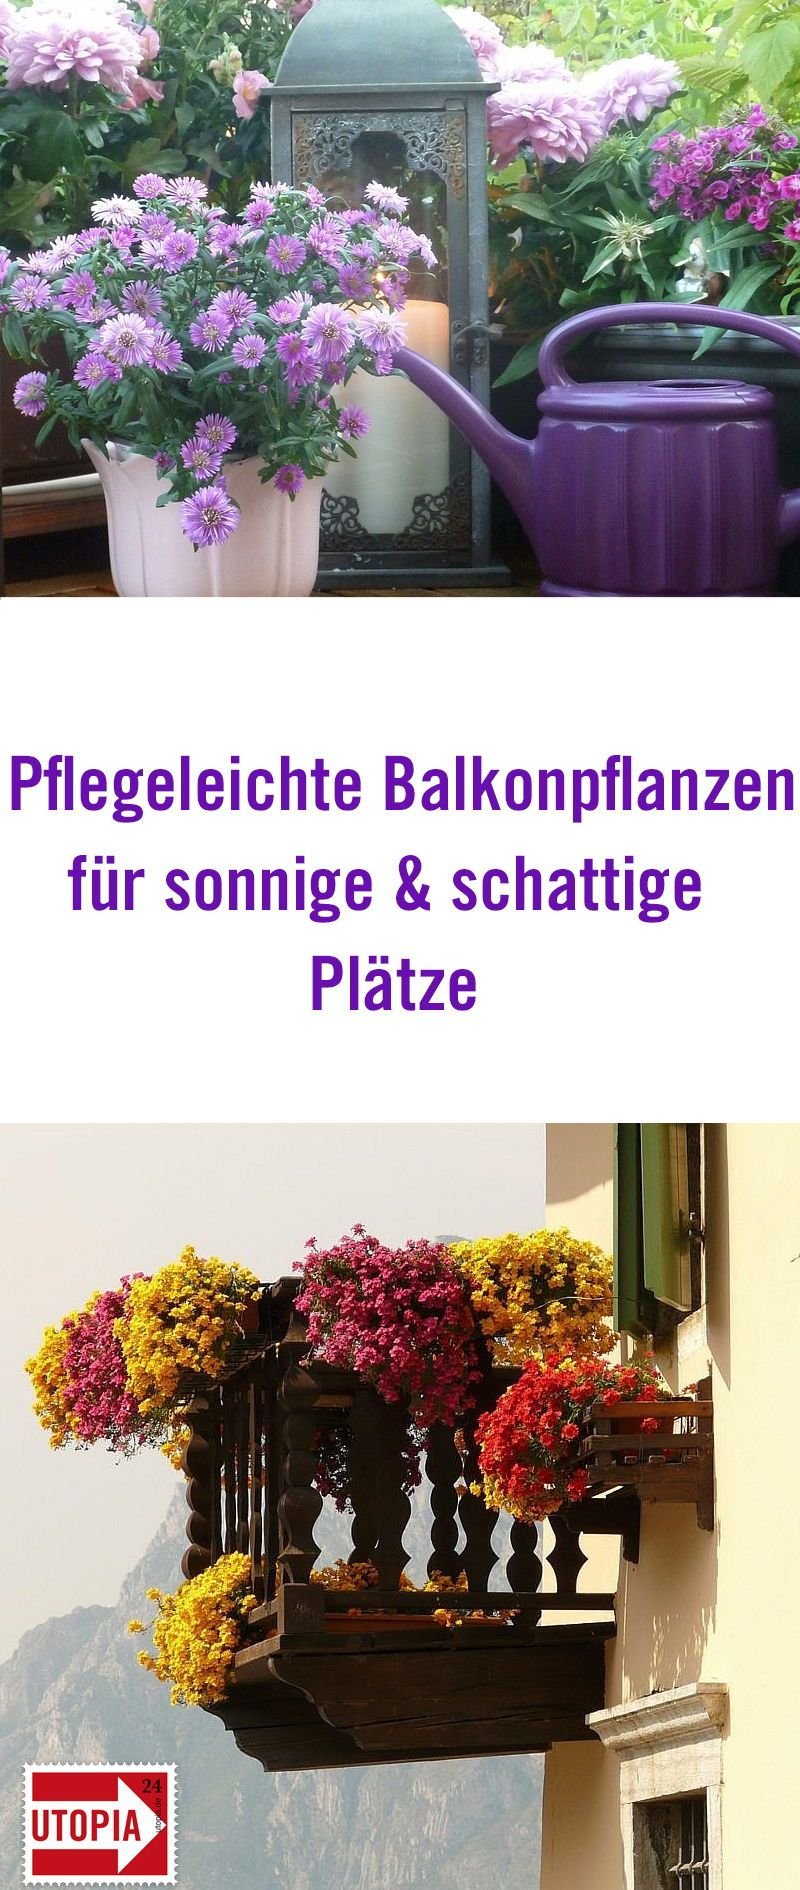 balkonpflanzen pflegeleichte sorten f r sonnige und schattige pl tze urban gardening gem se. Black Bedroom Furniture Sets. Home Design Ideas